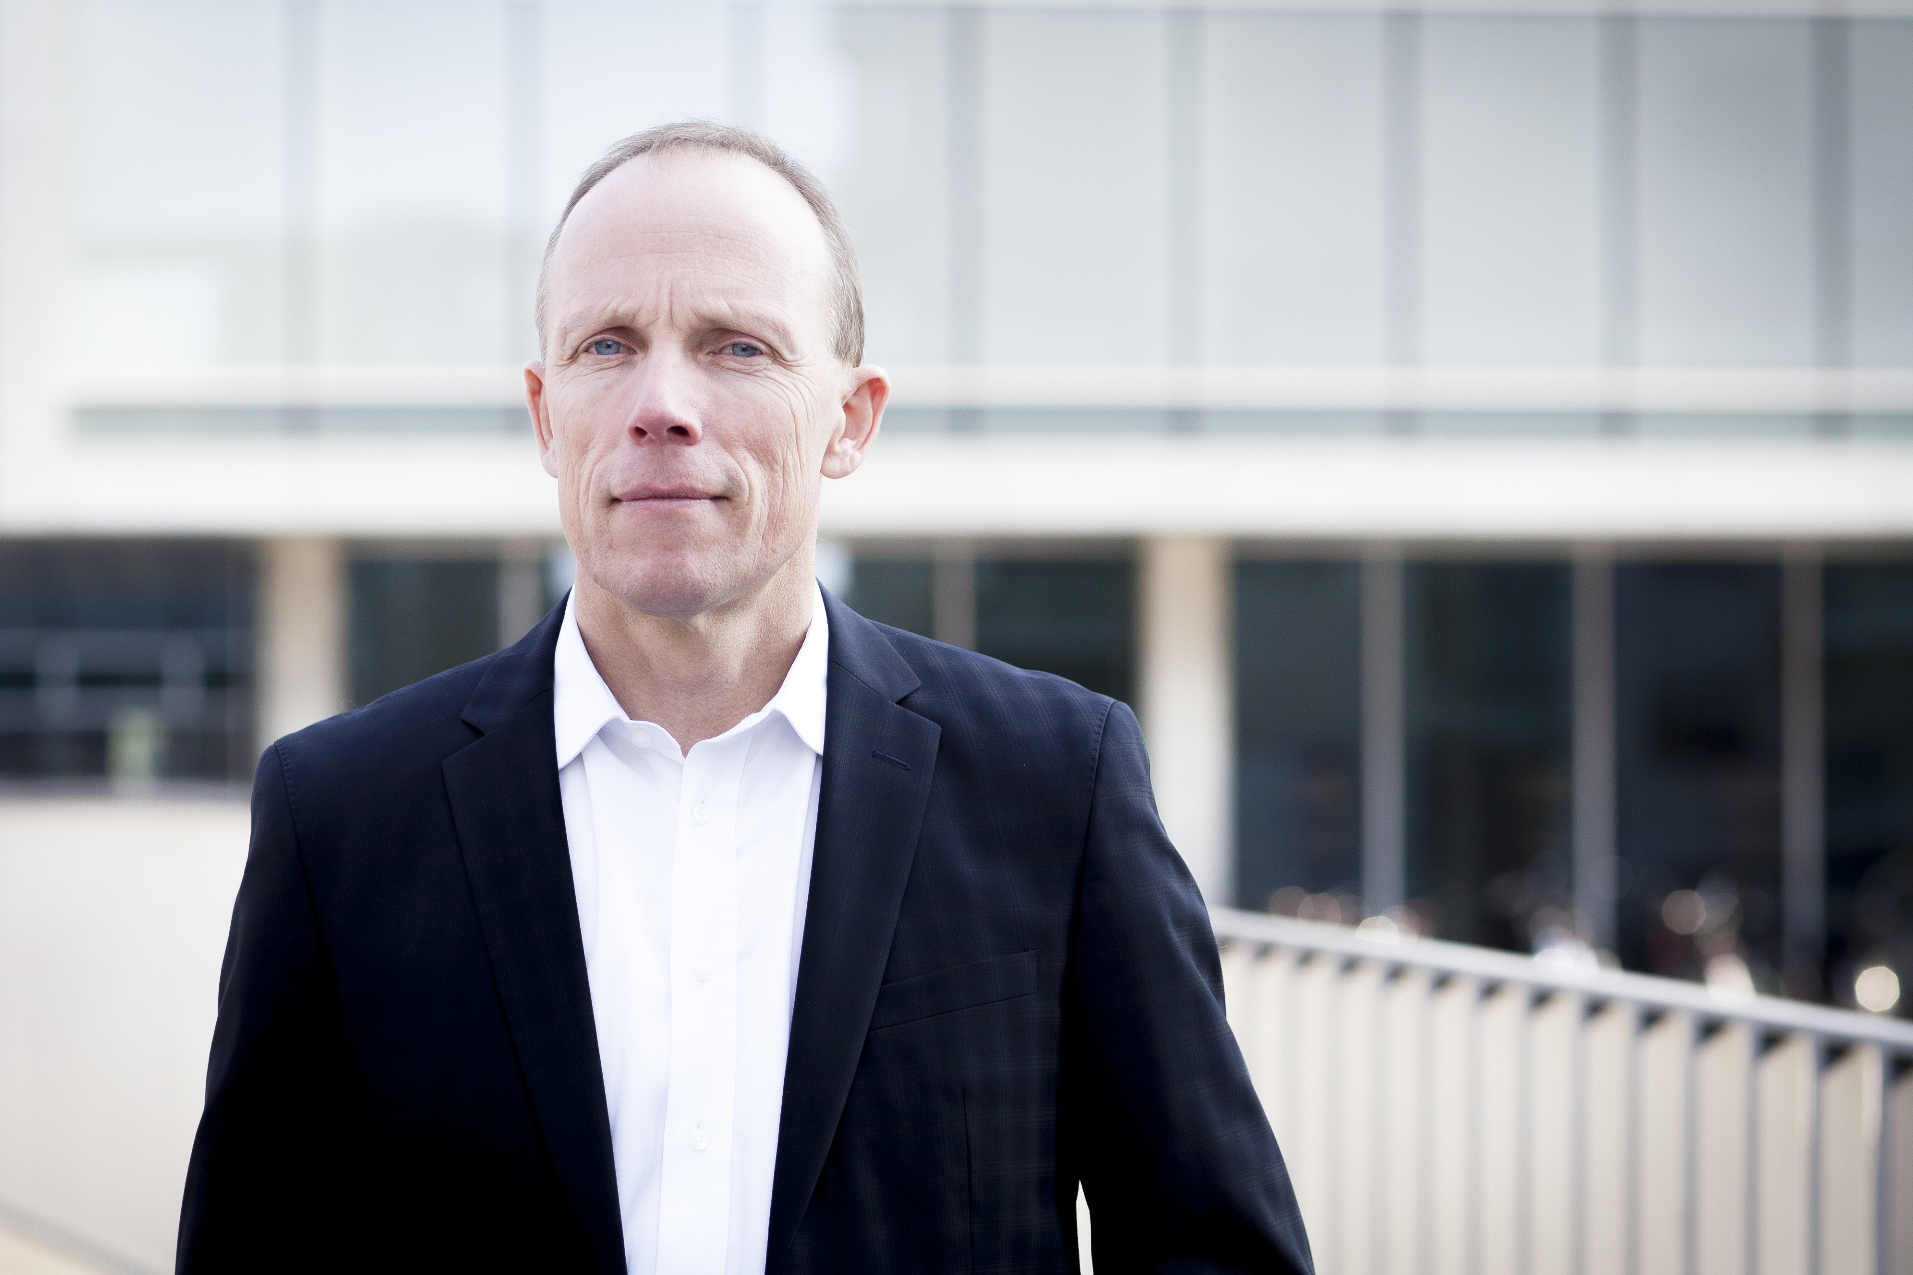 Peter Colsted, the CEO of Secunia